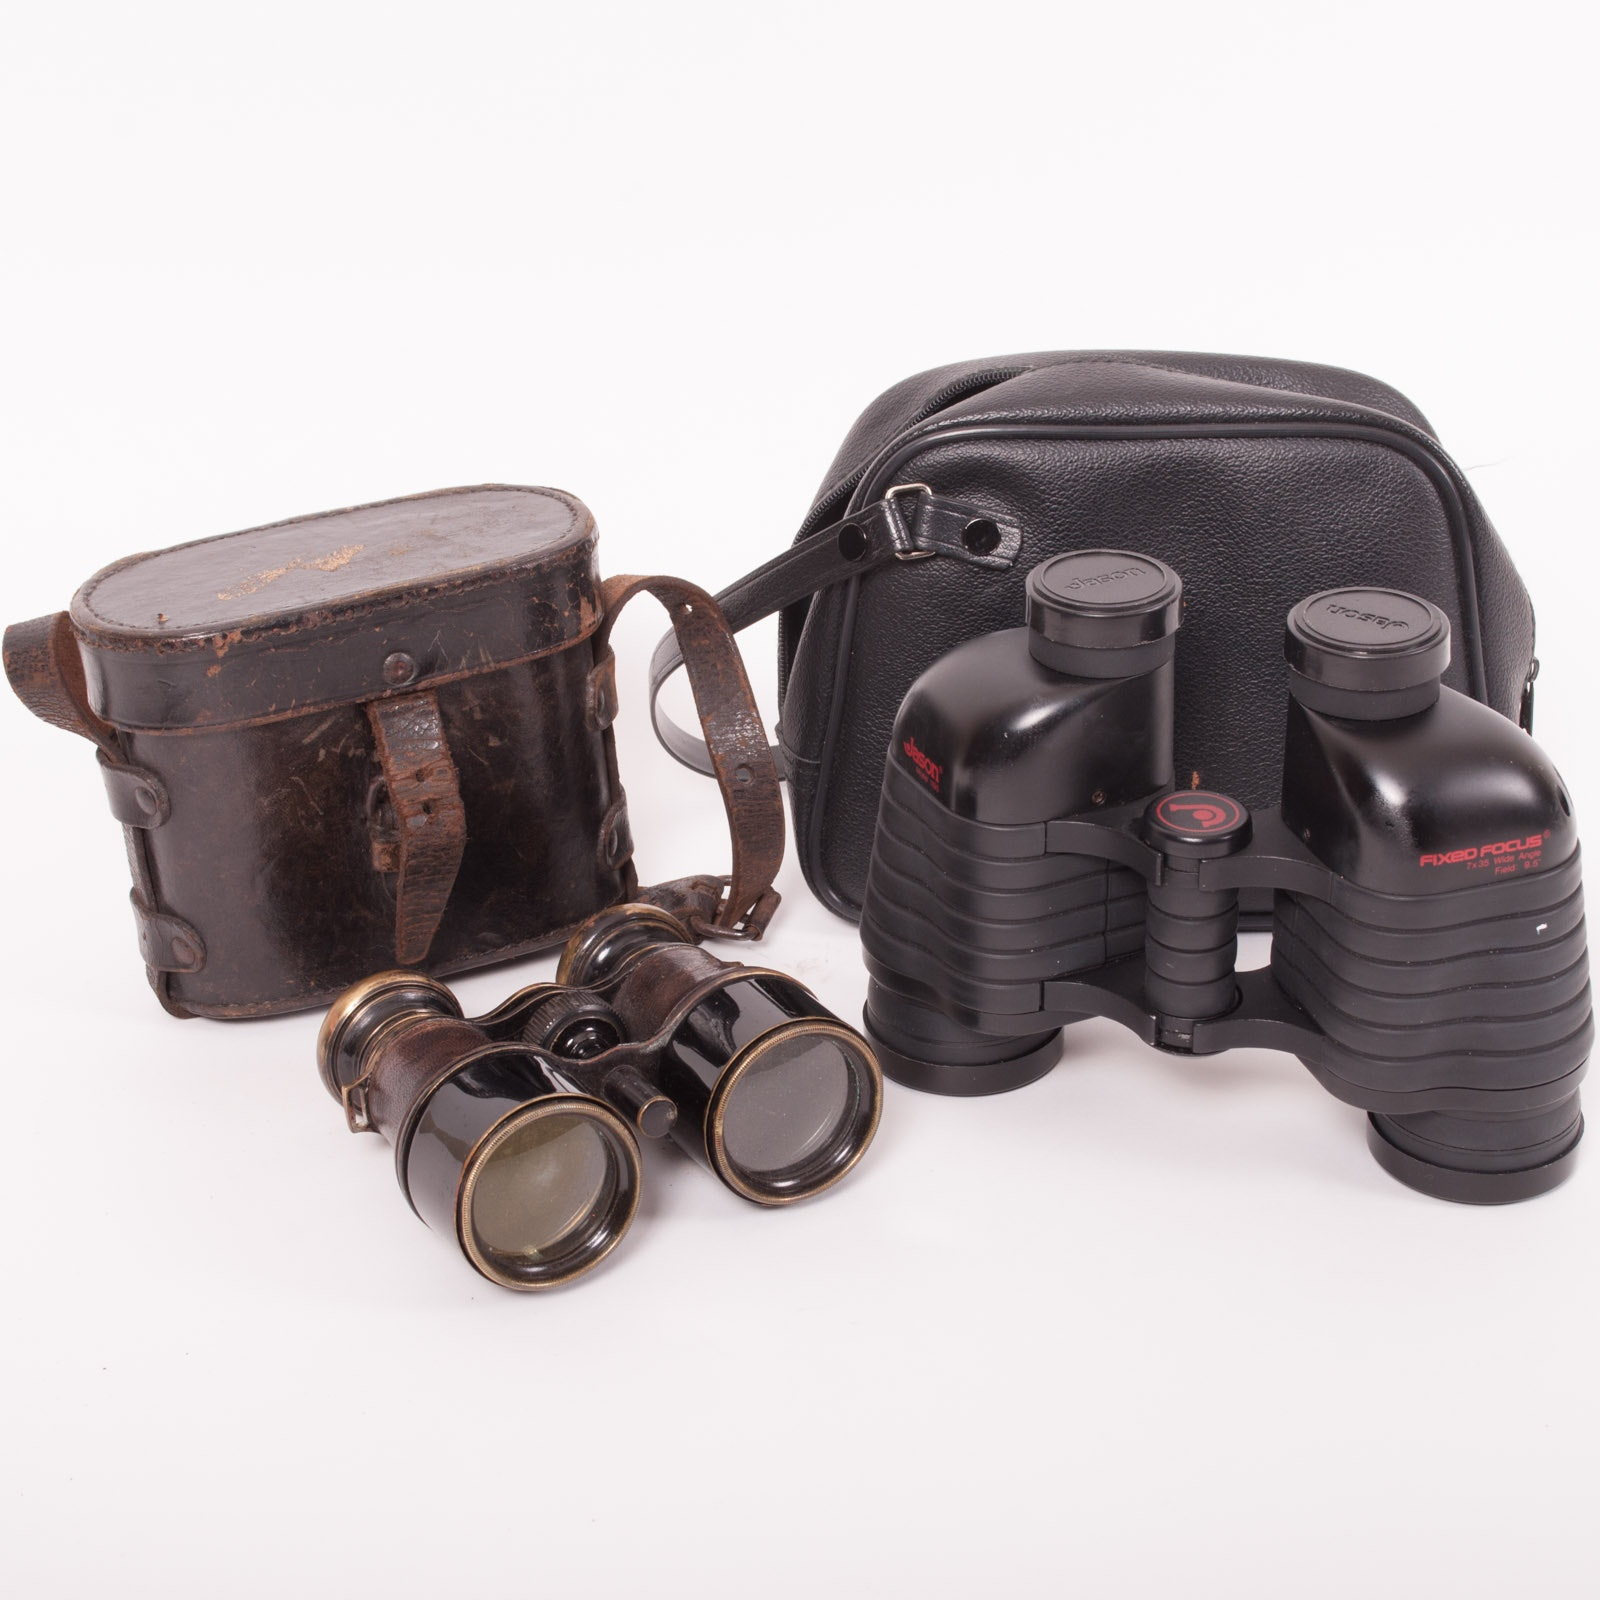 Antique Binoculars and Jason Model 1195 Binoculars